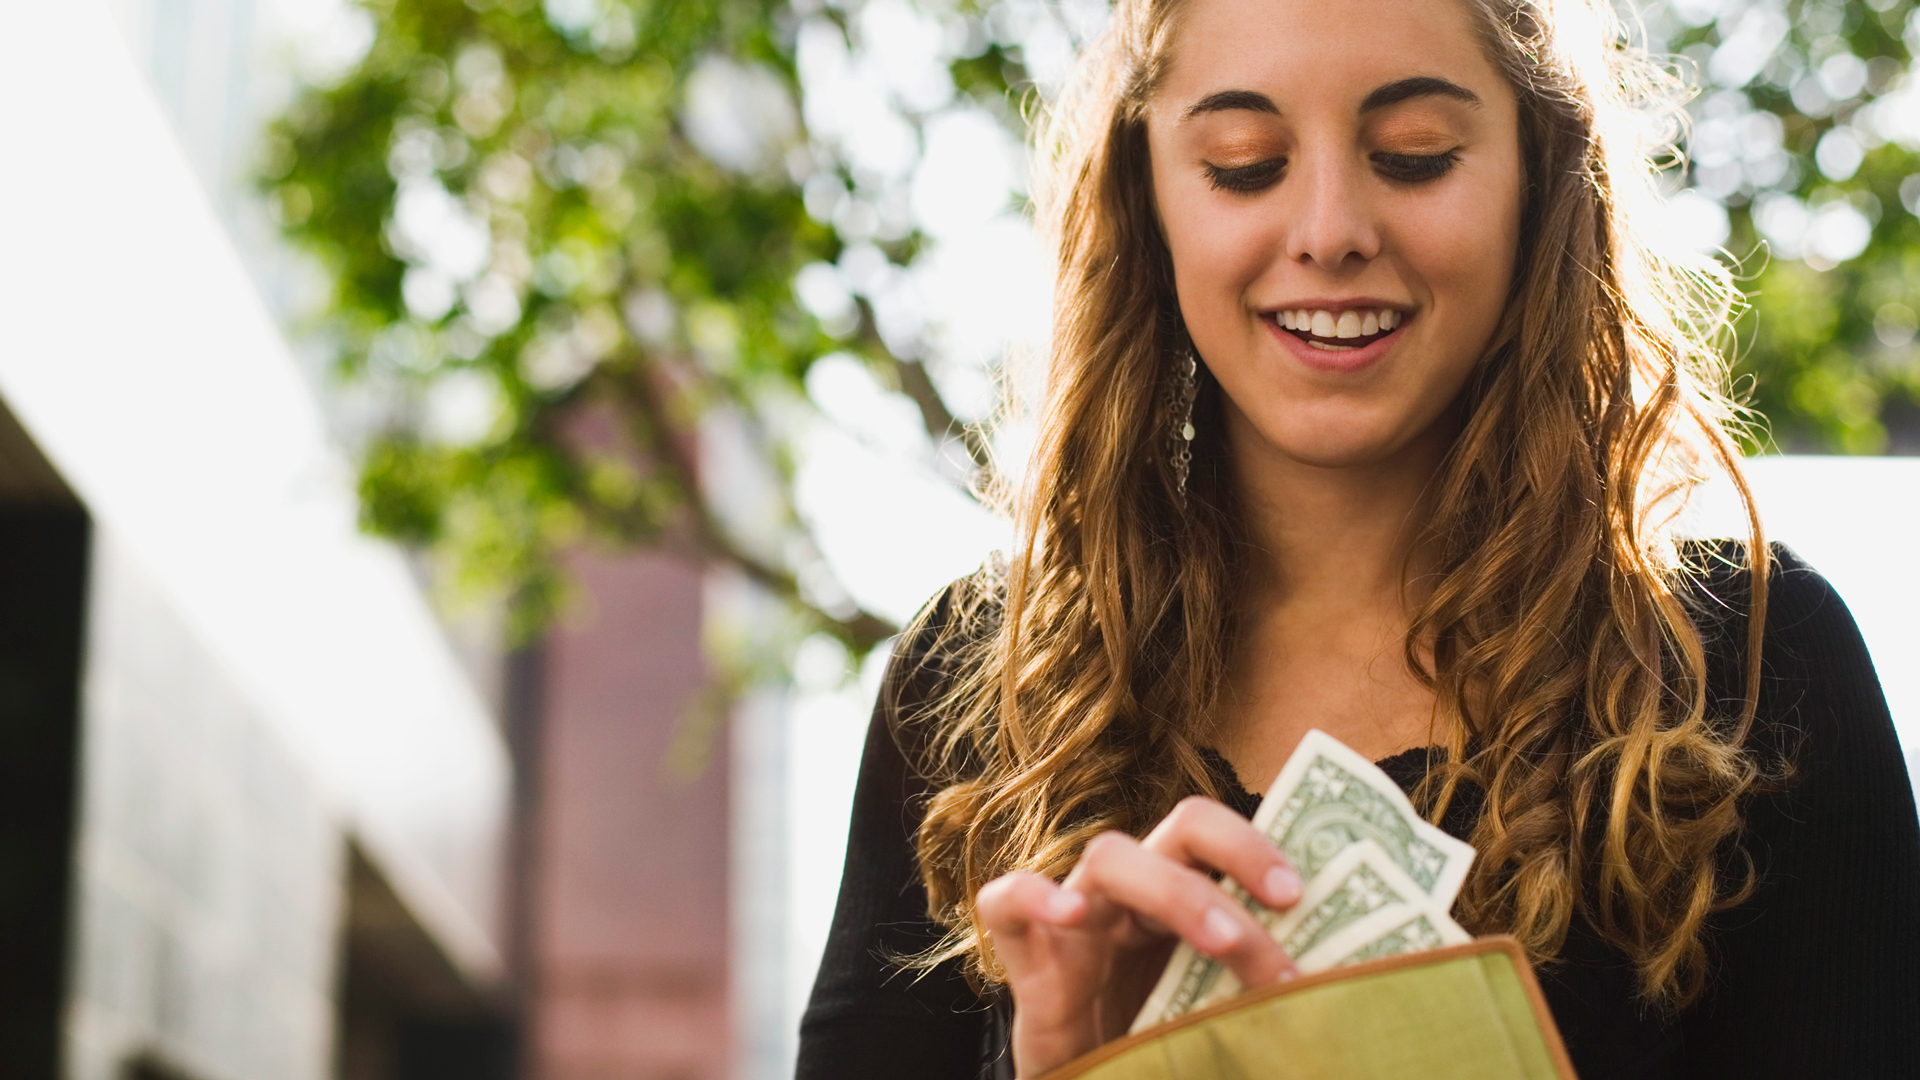 Teen girl removing money from wallet